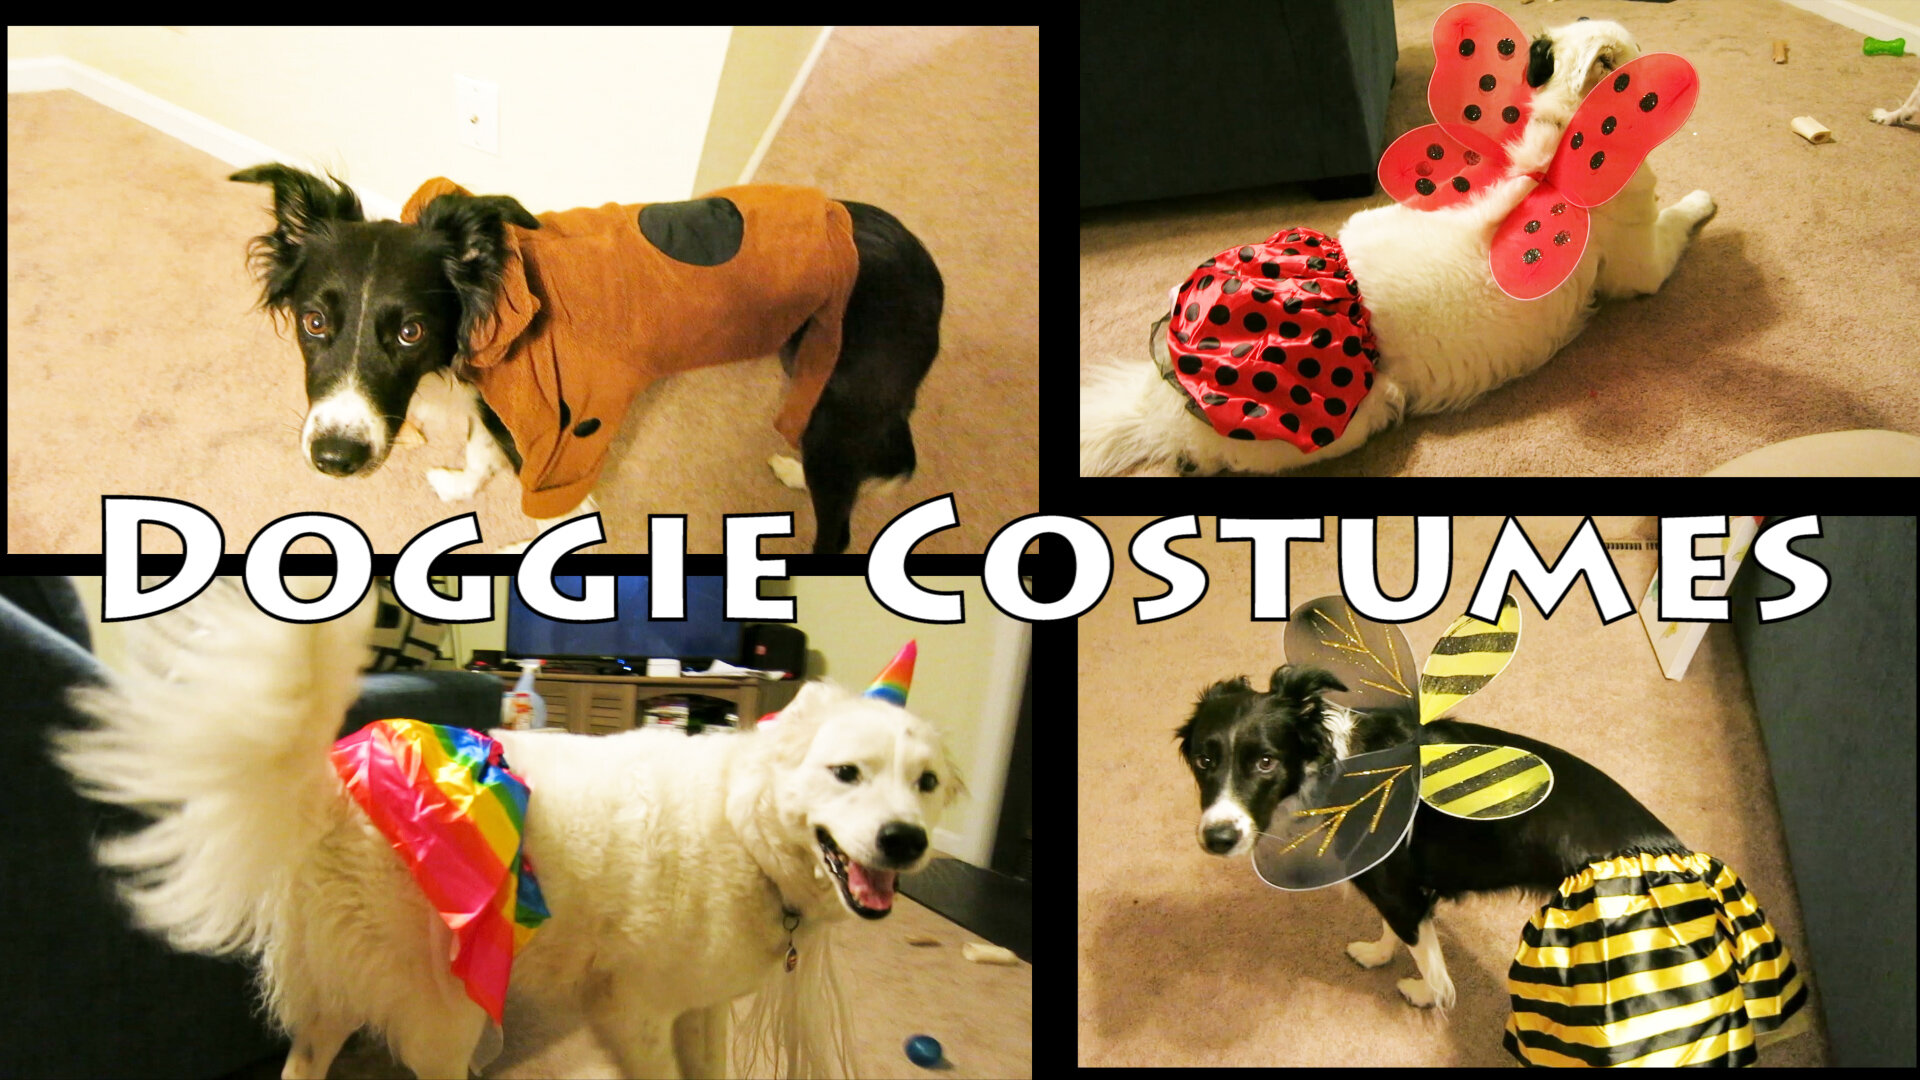 How to make a dog costume out of a kids costume bumble bee lady bug unicorn Scooby Doo 1.jpg